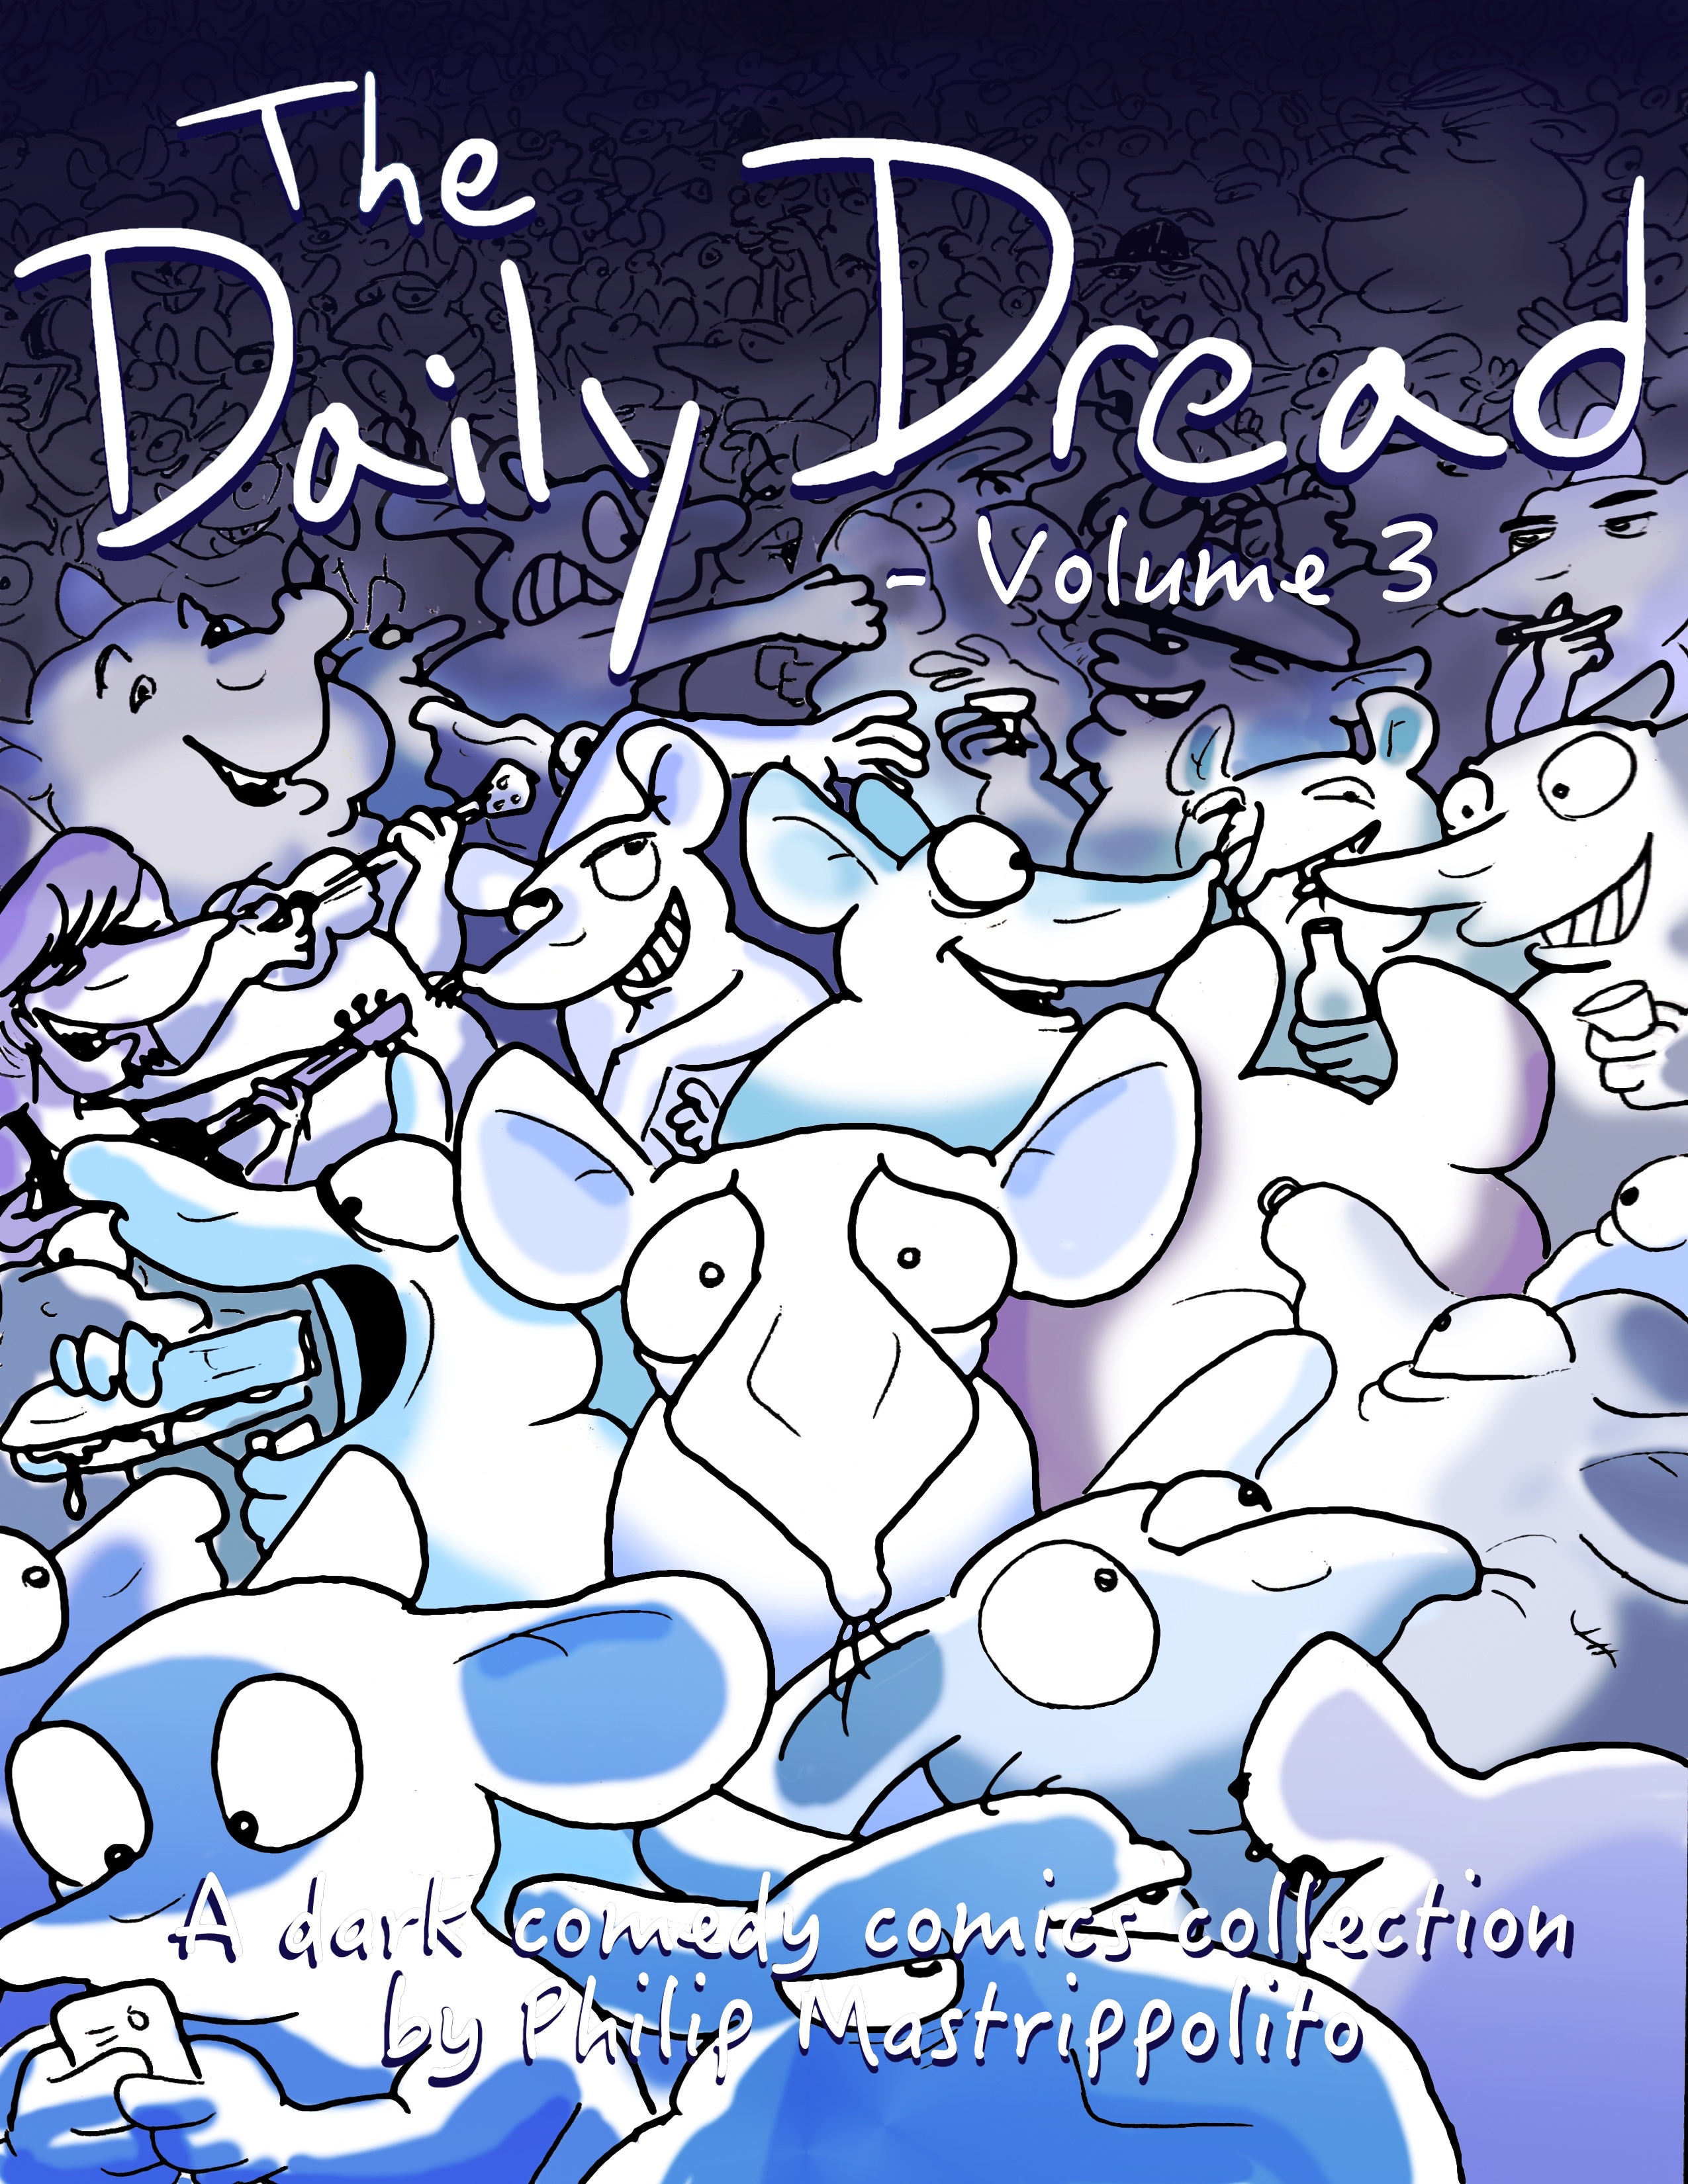 Vol 3 front cover